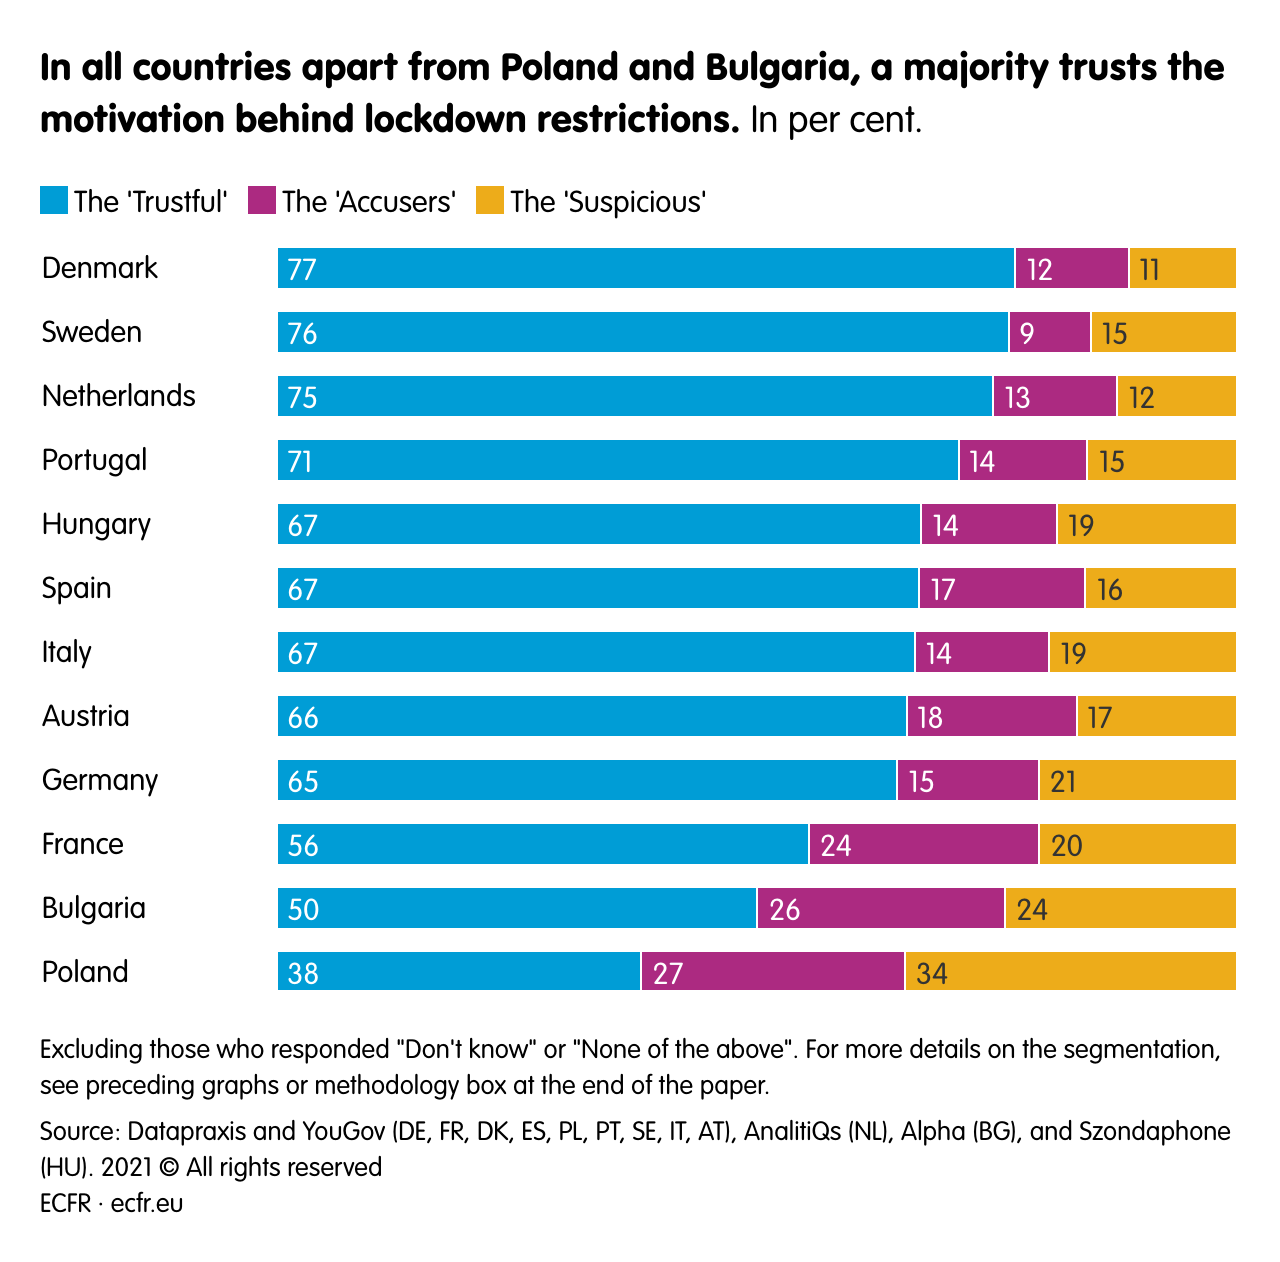 In all countries apart from Poland and Bulgaria, a majority trusts the motivation behind lockdown restrictions.